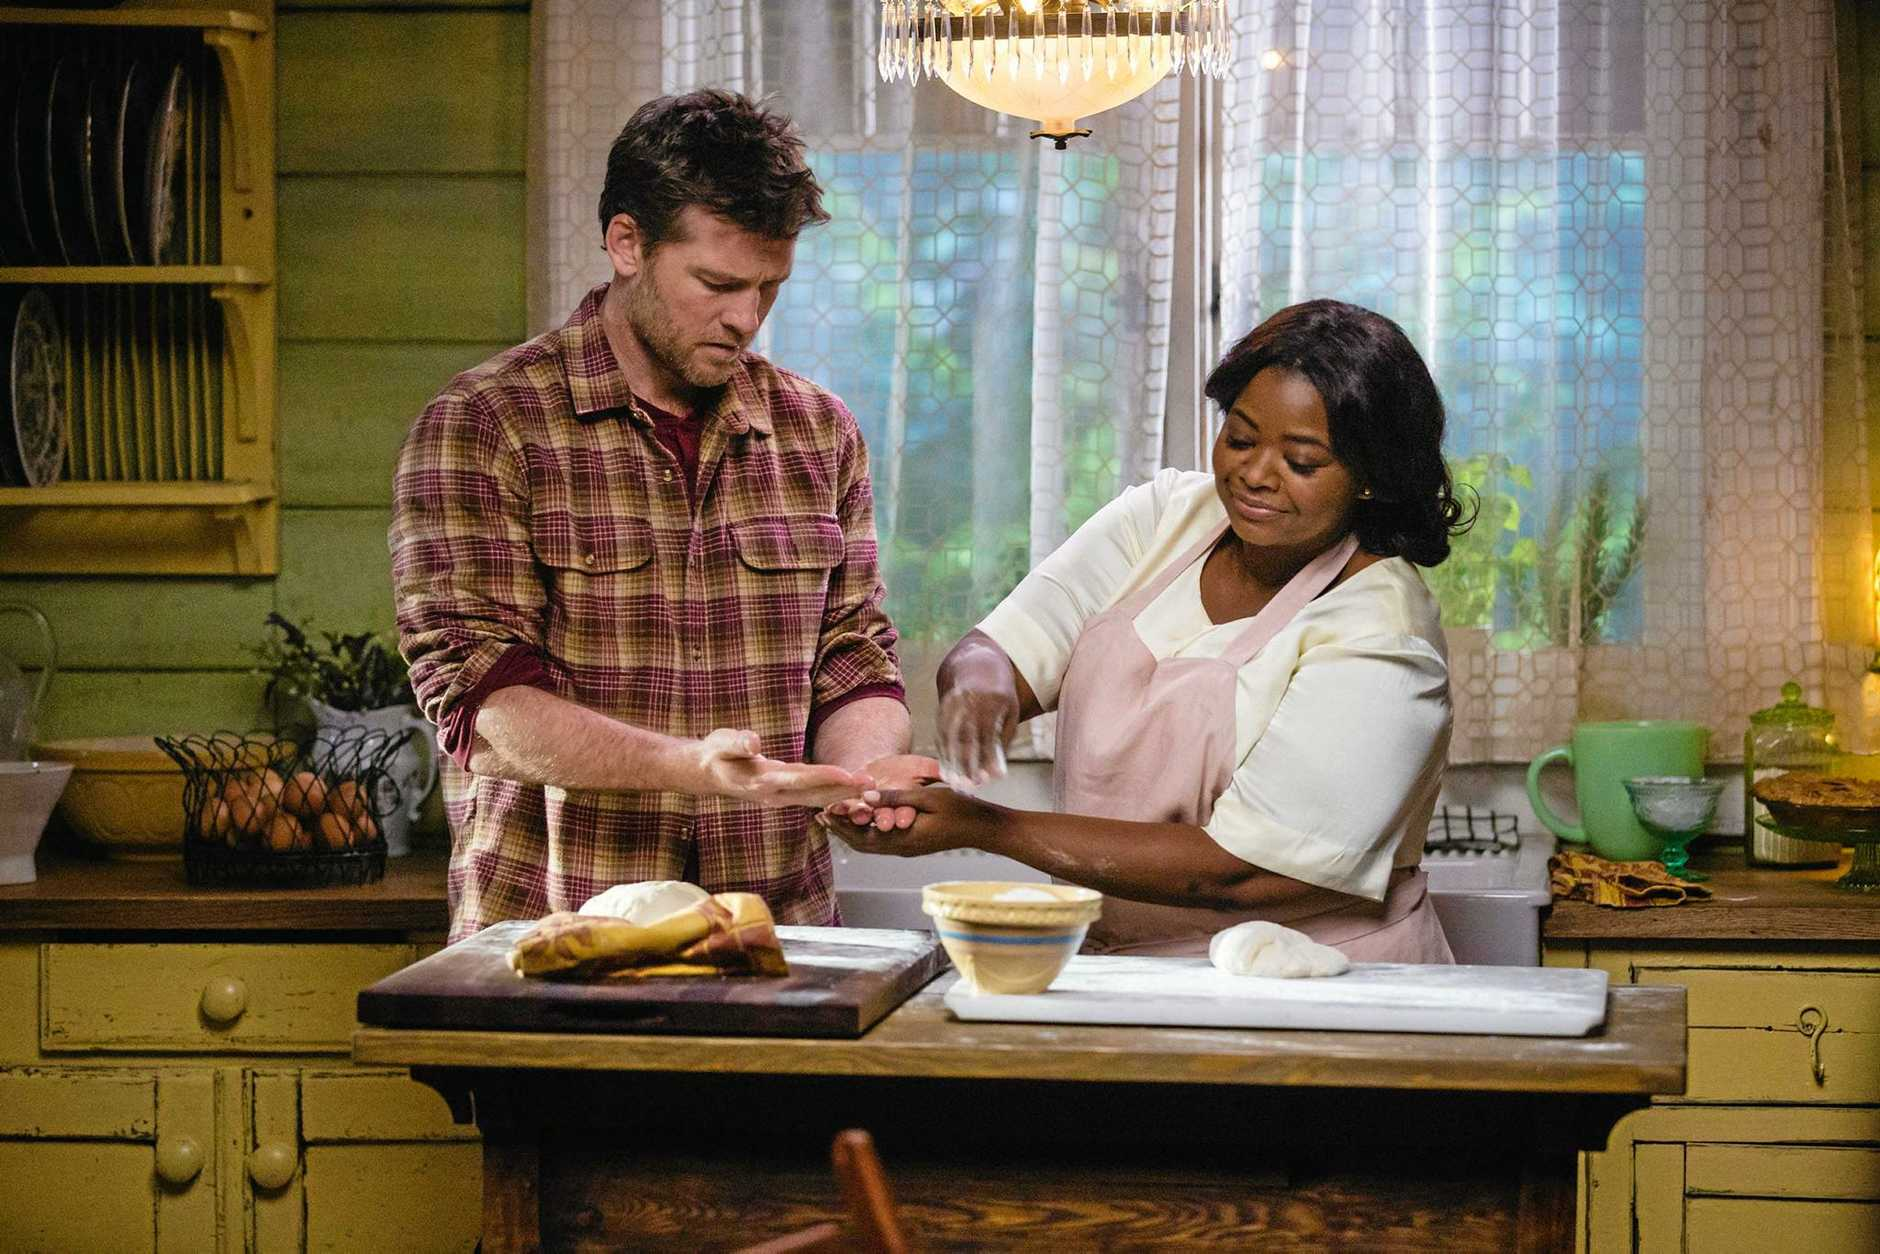 Sam Worthington and Octavia Spencer in a scene from the movie The Shack.